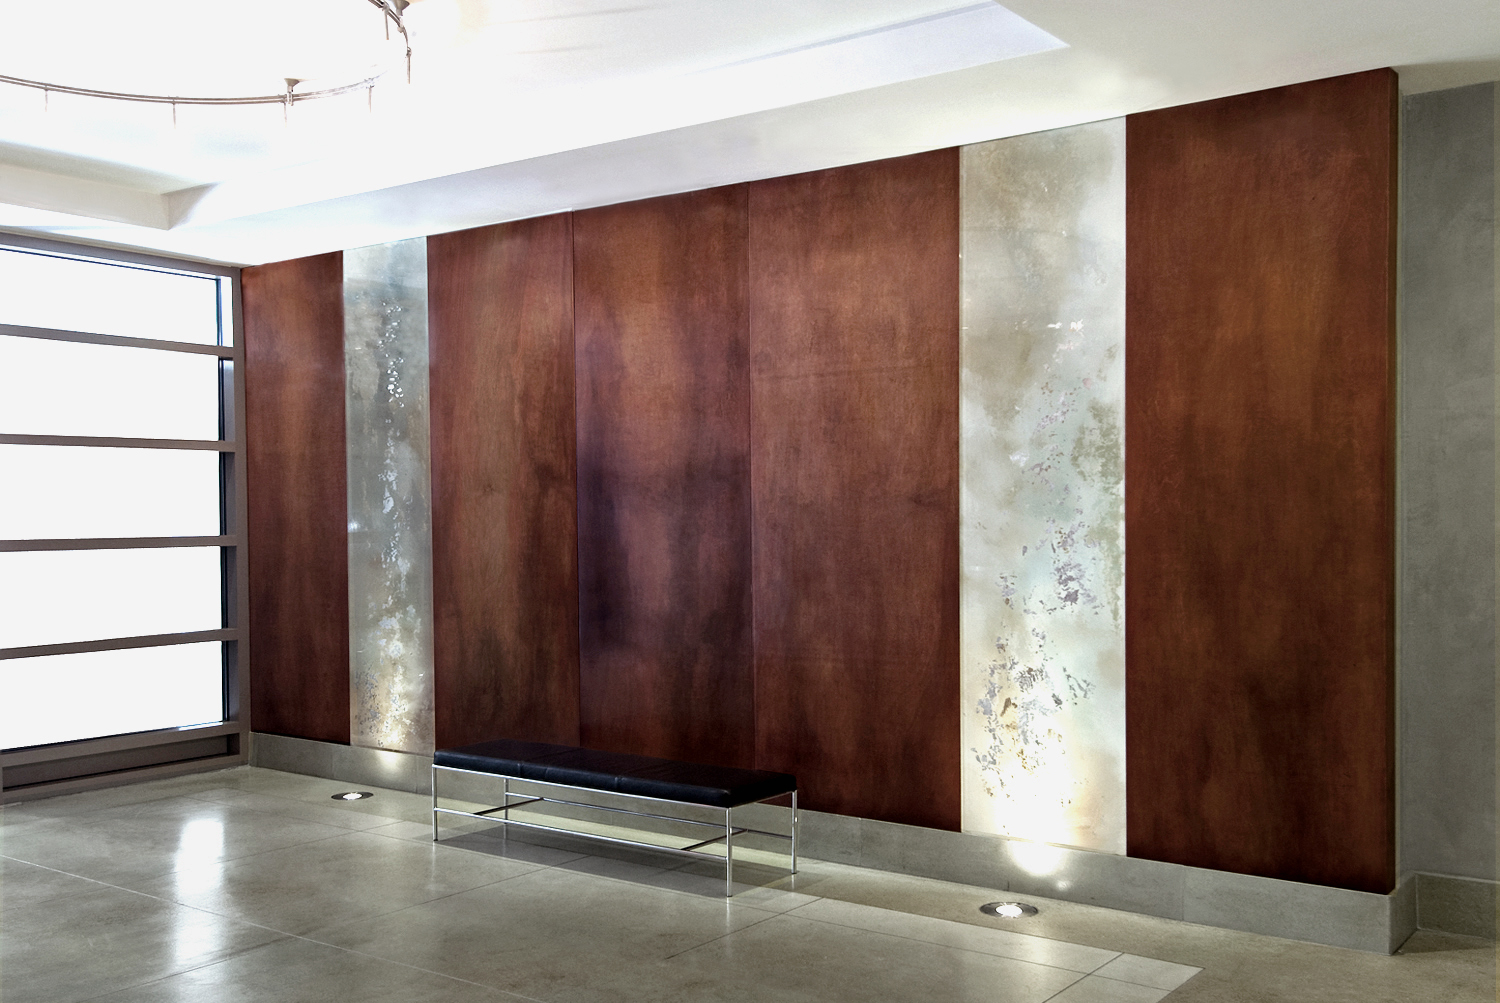 Lobby Designer in NY, NY | Joe Ginsberg Design